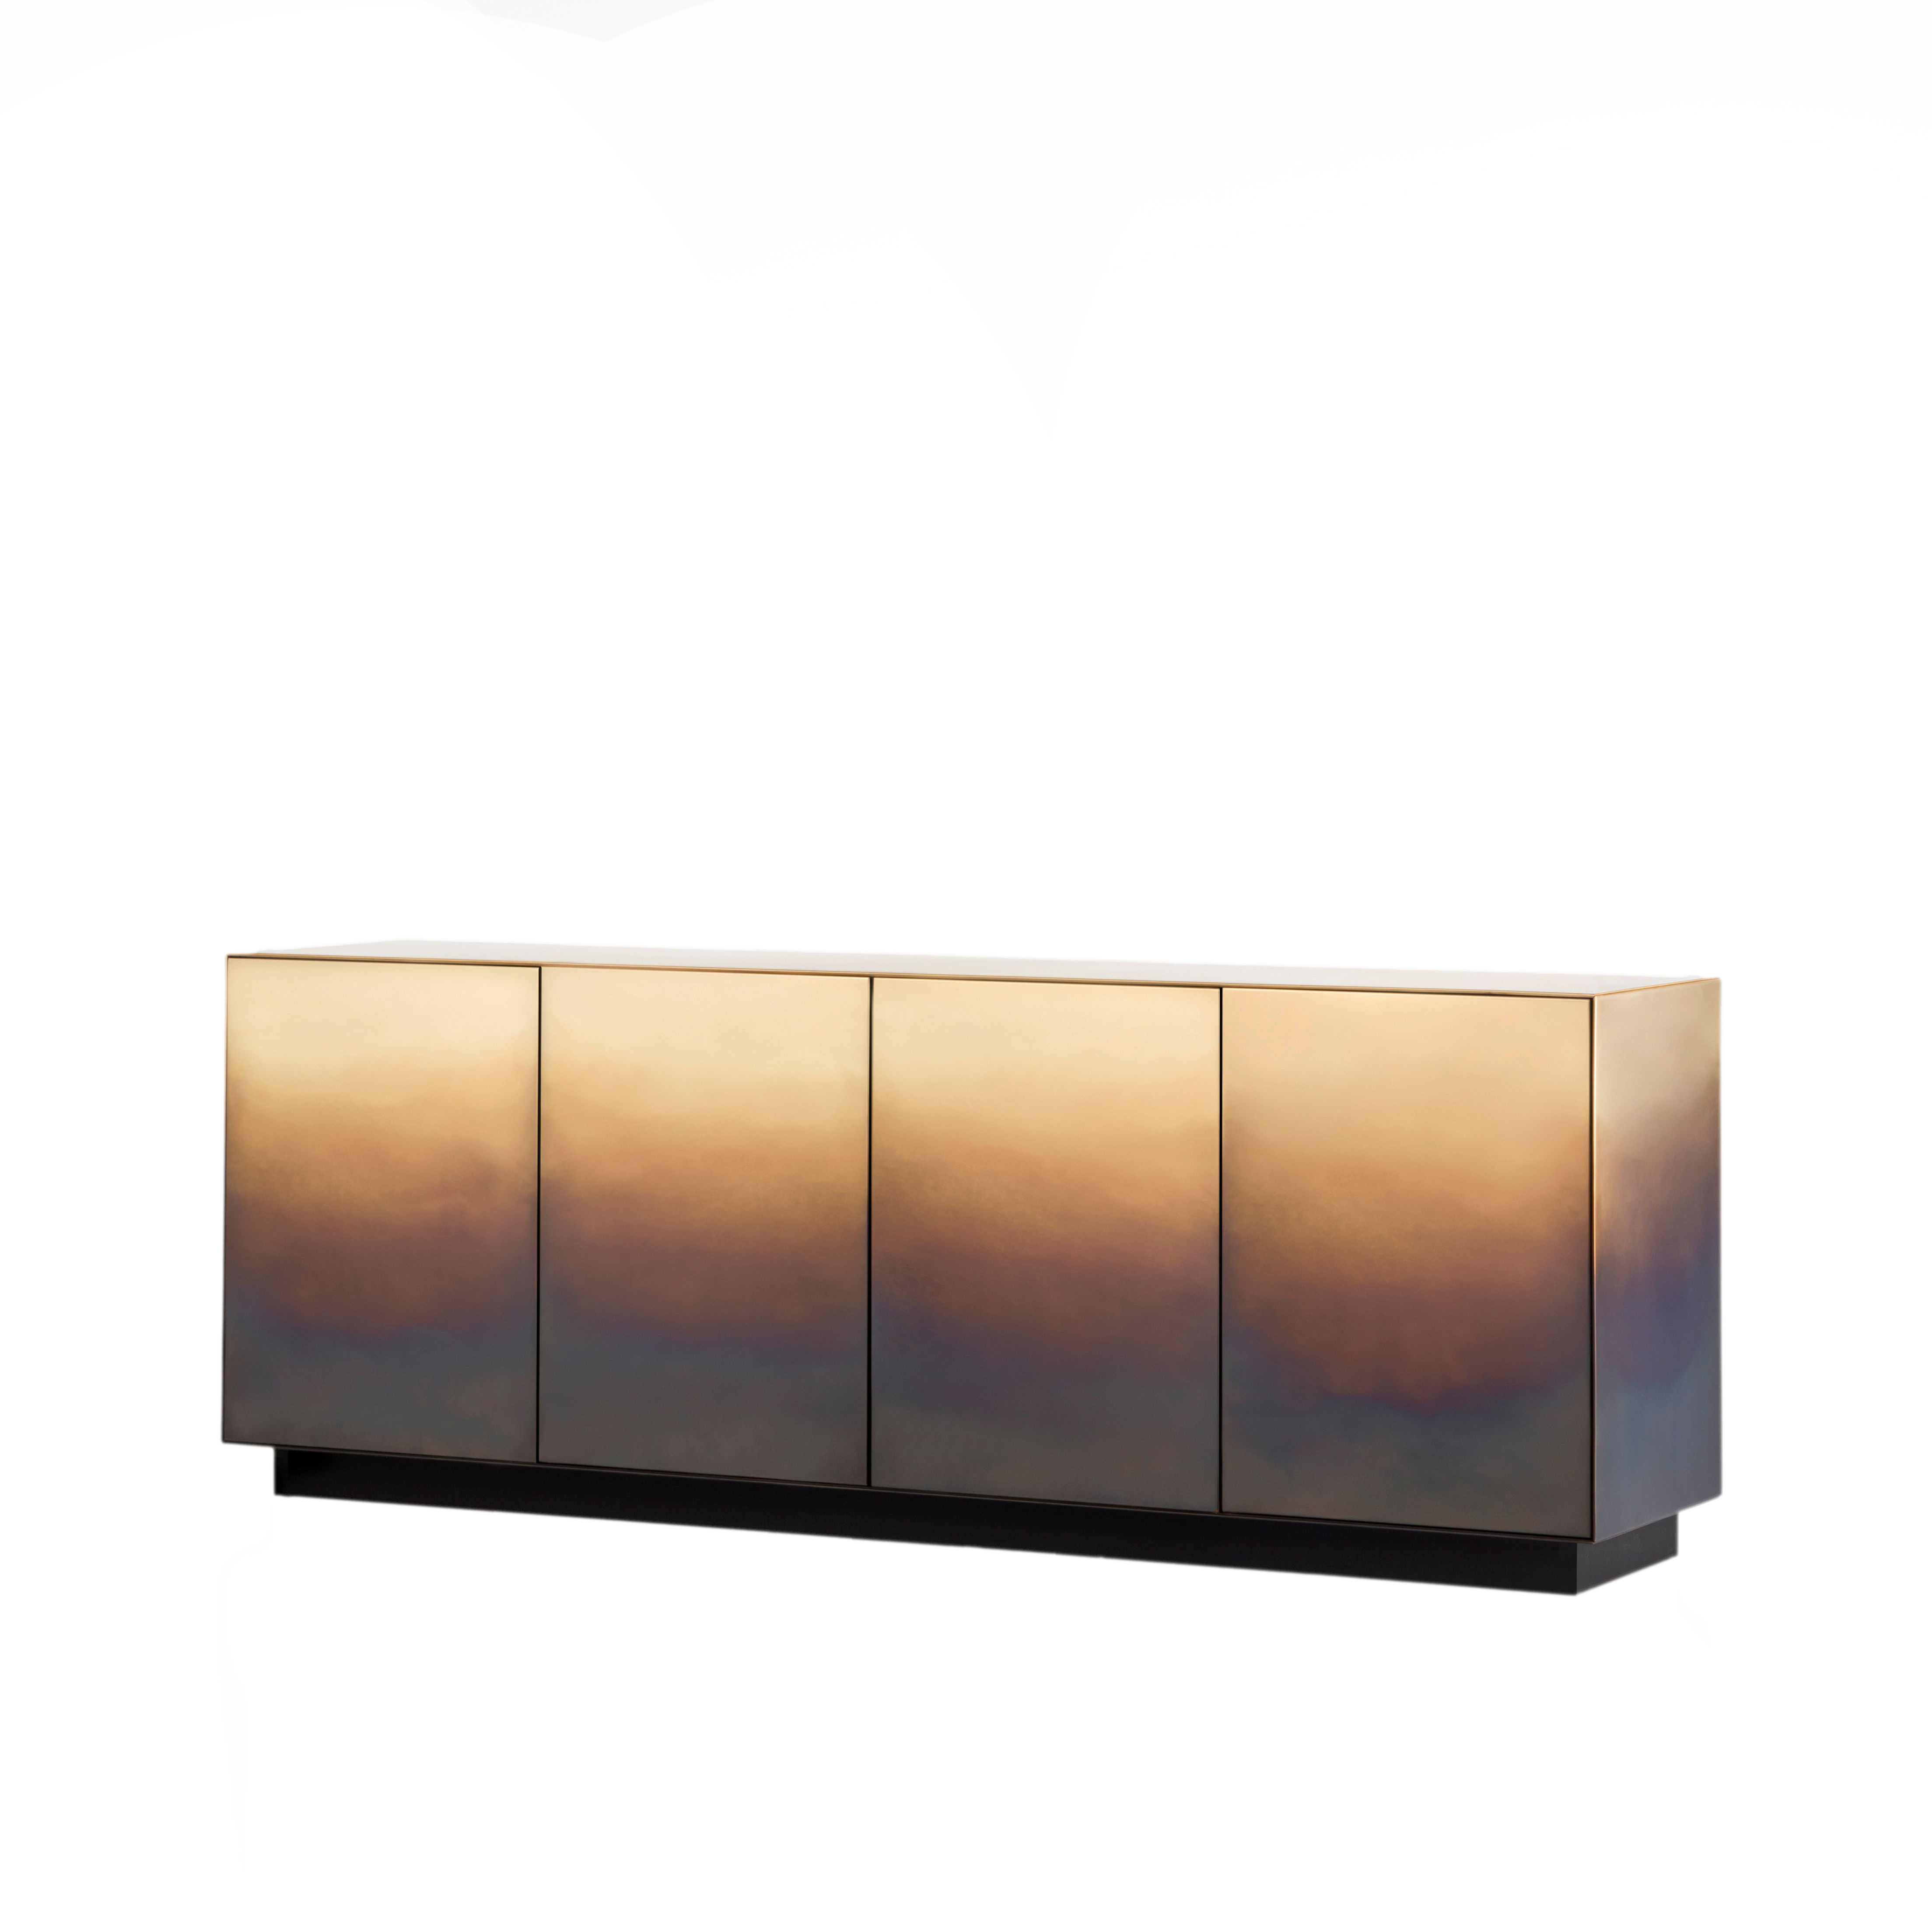 Marea Sideboard - The traces of time are drawn one on top of another, infused into the changing skin of the rigorous metal forms that define these cabinets and chests.‎ Like the tide (marea in Italian) leaves its mark, wave after wave, even here the hand of the craftsman has left its sign, oxidation after oxidation, creating a painterly effect that resembles water's erosion of the material.‎ Somewhere between design object and work of art, each piece in the collection, composed of a chest of drawers, low credenza and cabinet, is unique thanks to an entirely hand-crafted finish that transforms the metal surface into a delicate watercolour.‎